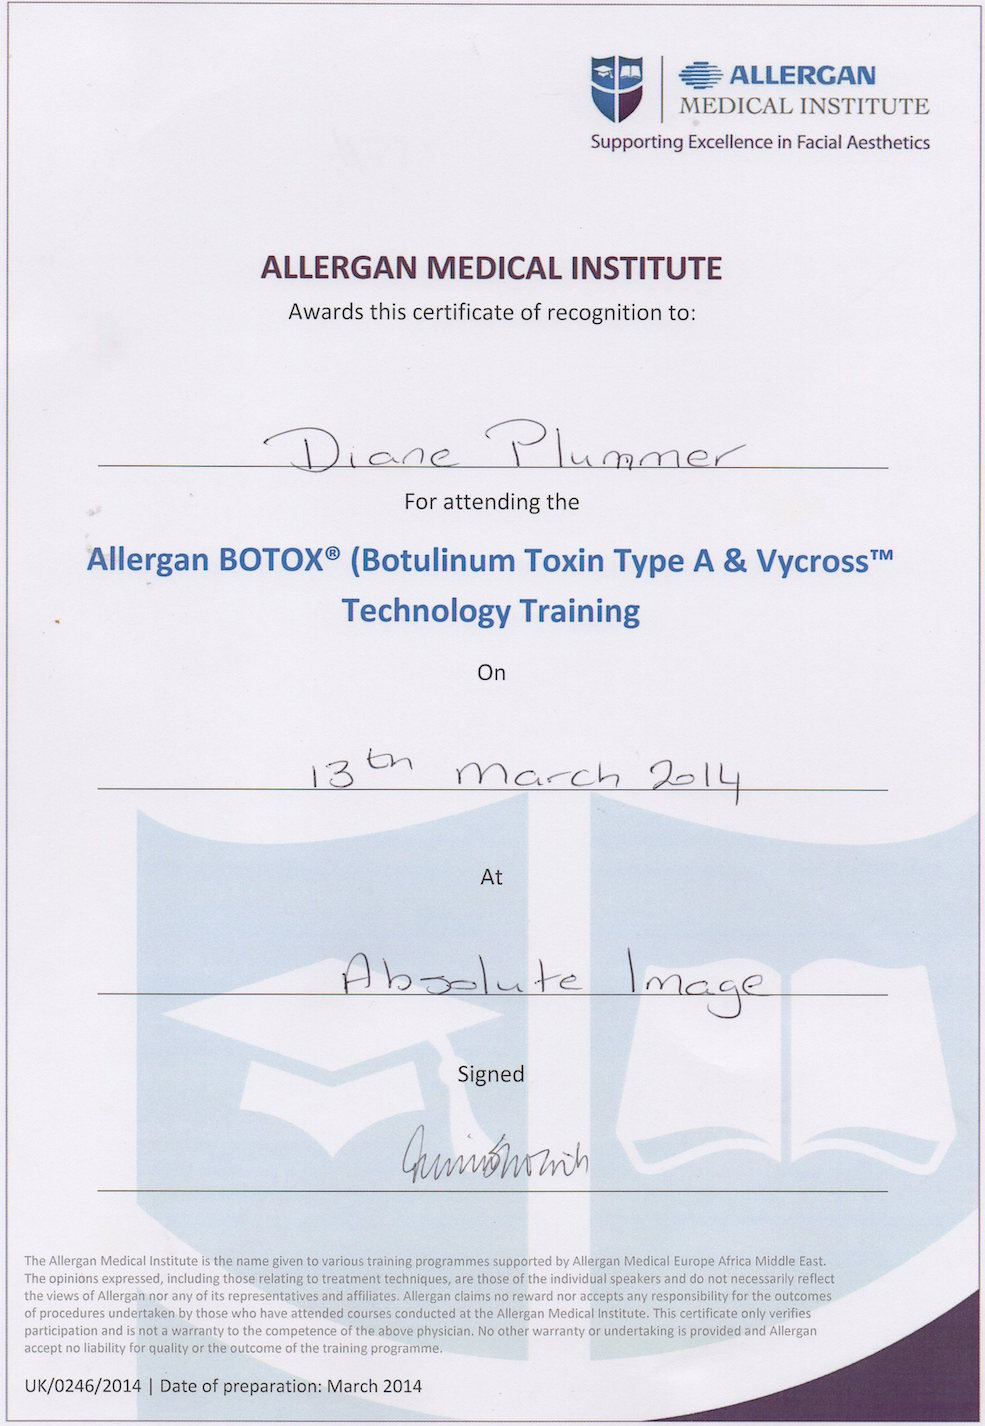 Allergan Medical Institute - Botox & Vycross technology training